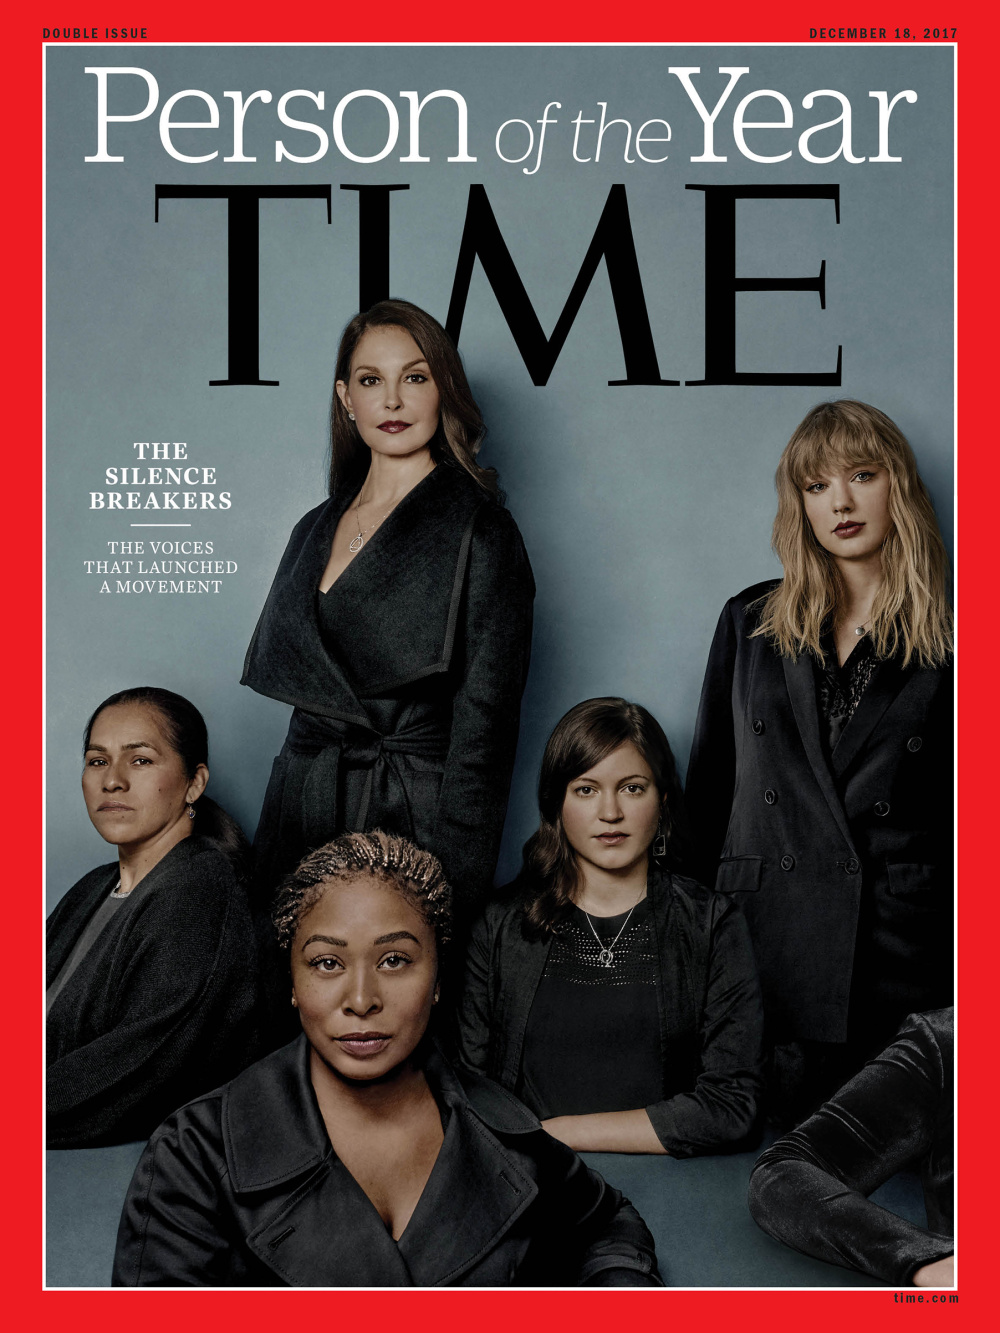 TIME MAGAZINE PERSON OF THE YEAR COVER: The Silence Breakers